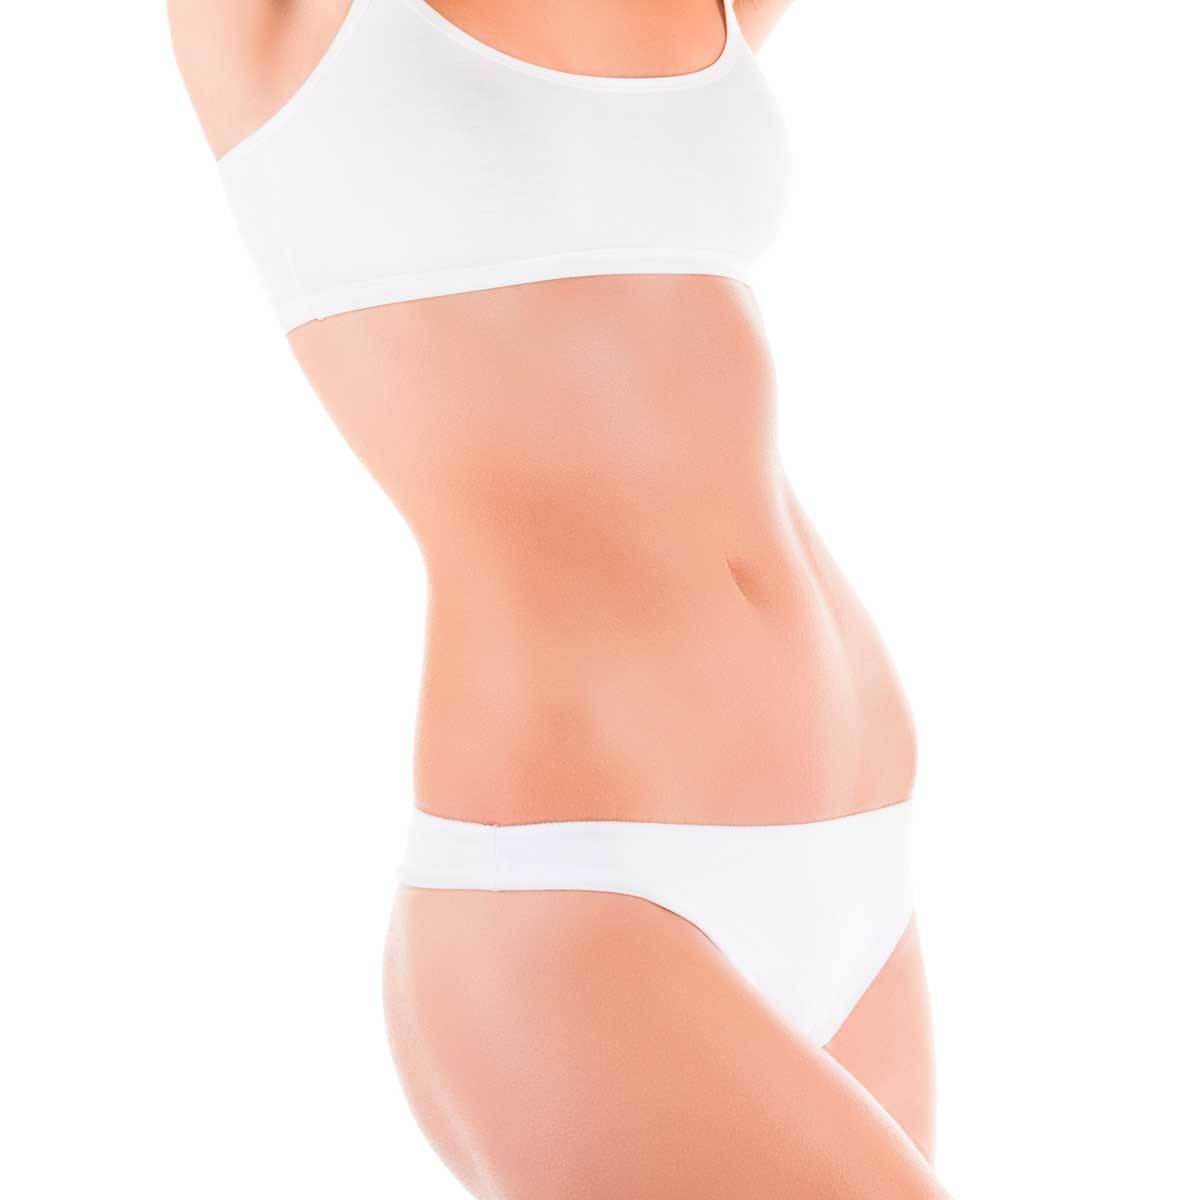 Photo of Pro Max Lipo Inch Loss Treatment